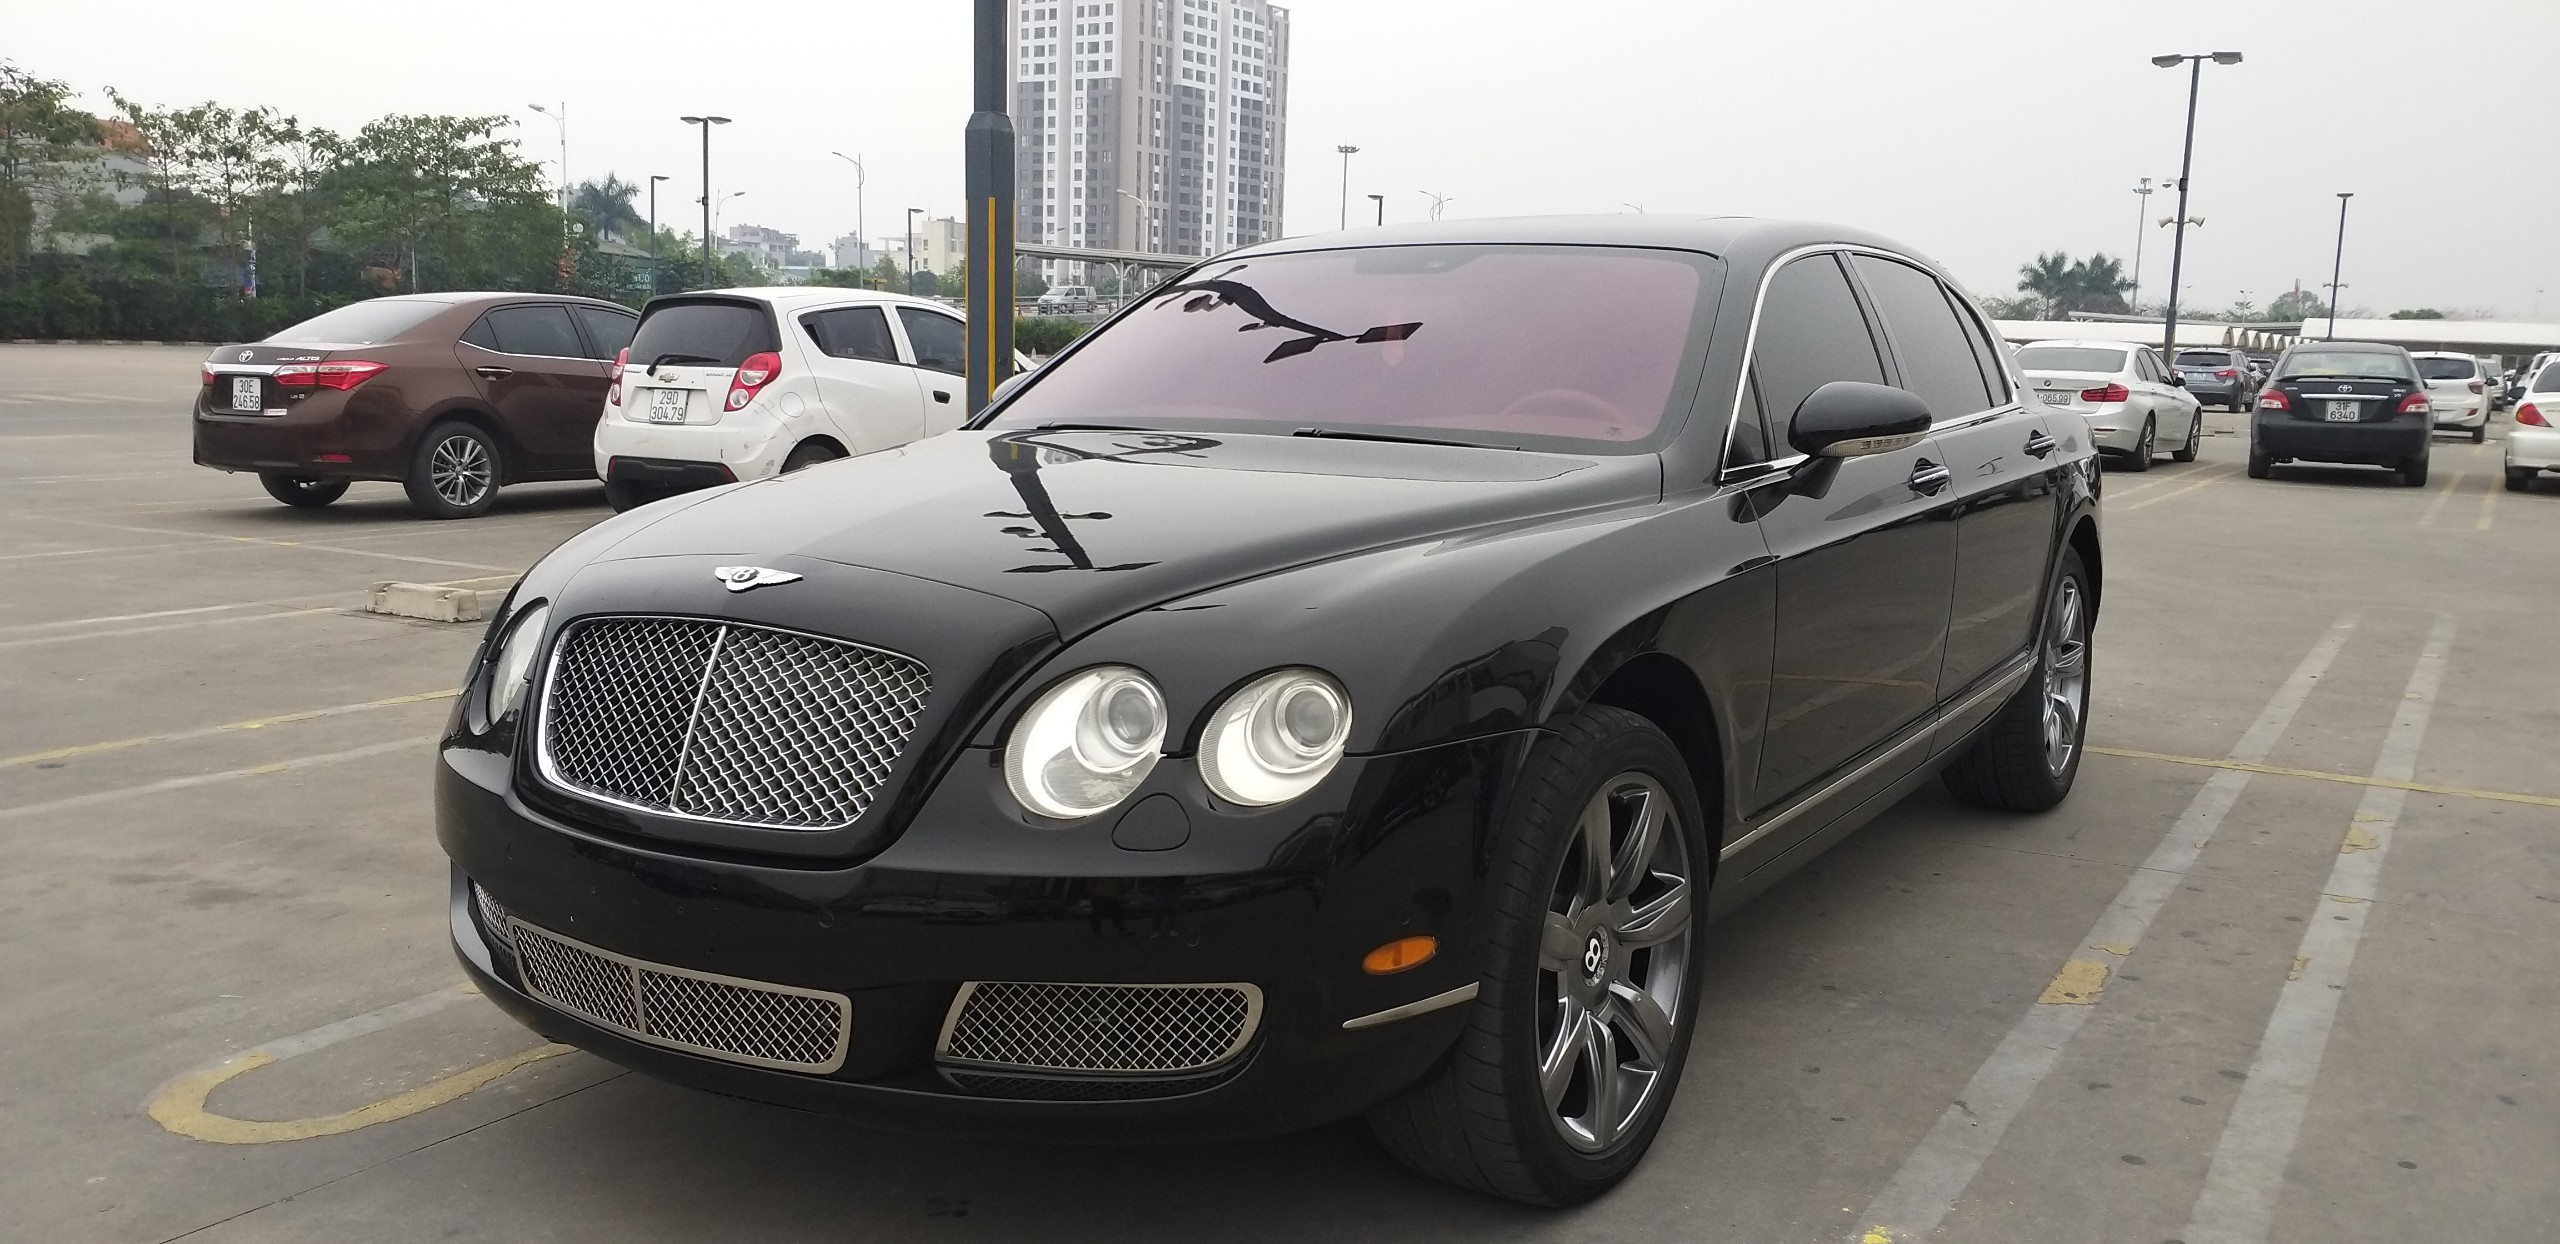 Bán Bentley Continental Flying Spur 2006 Ảnh số 42325215